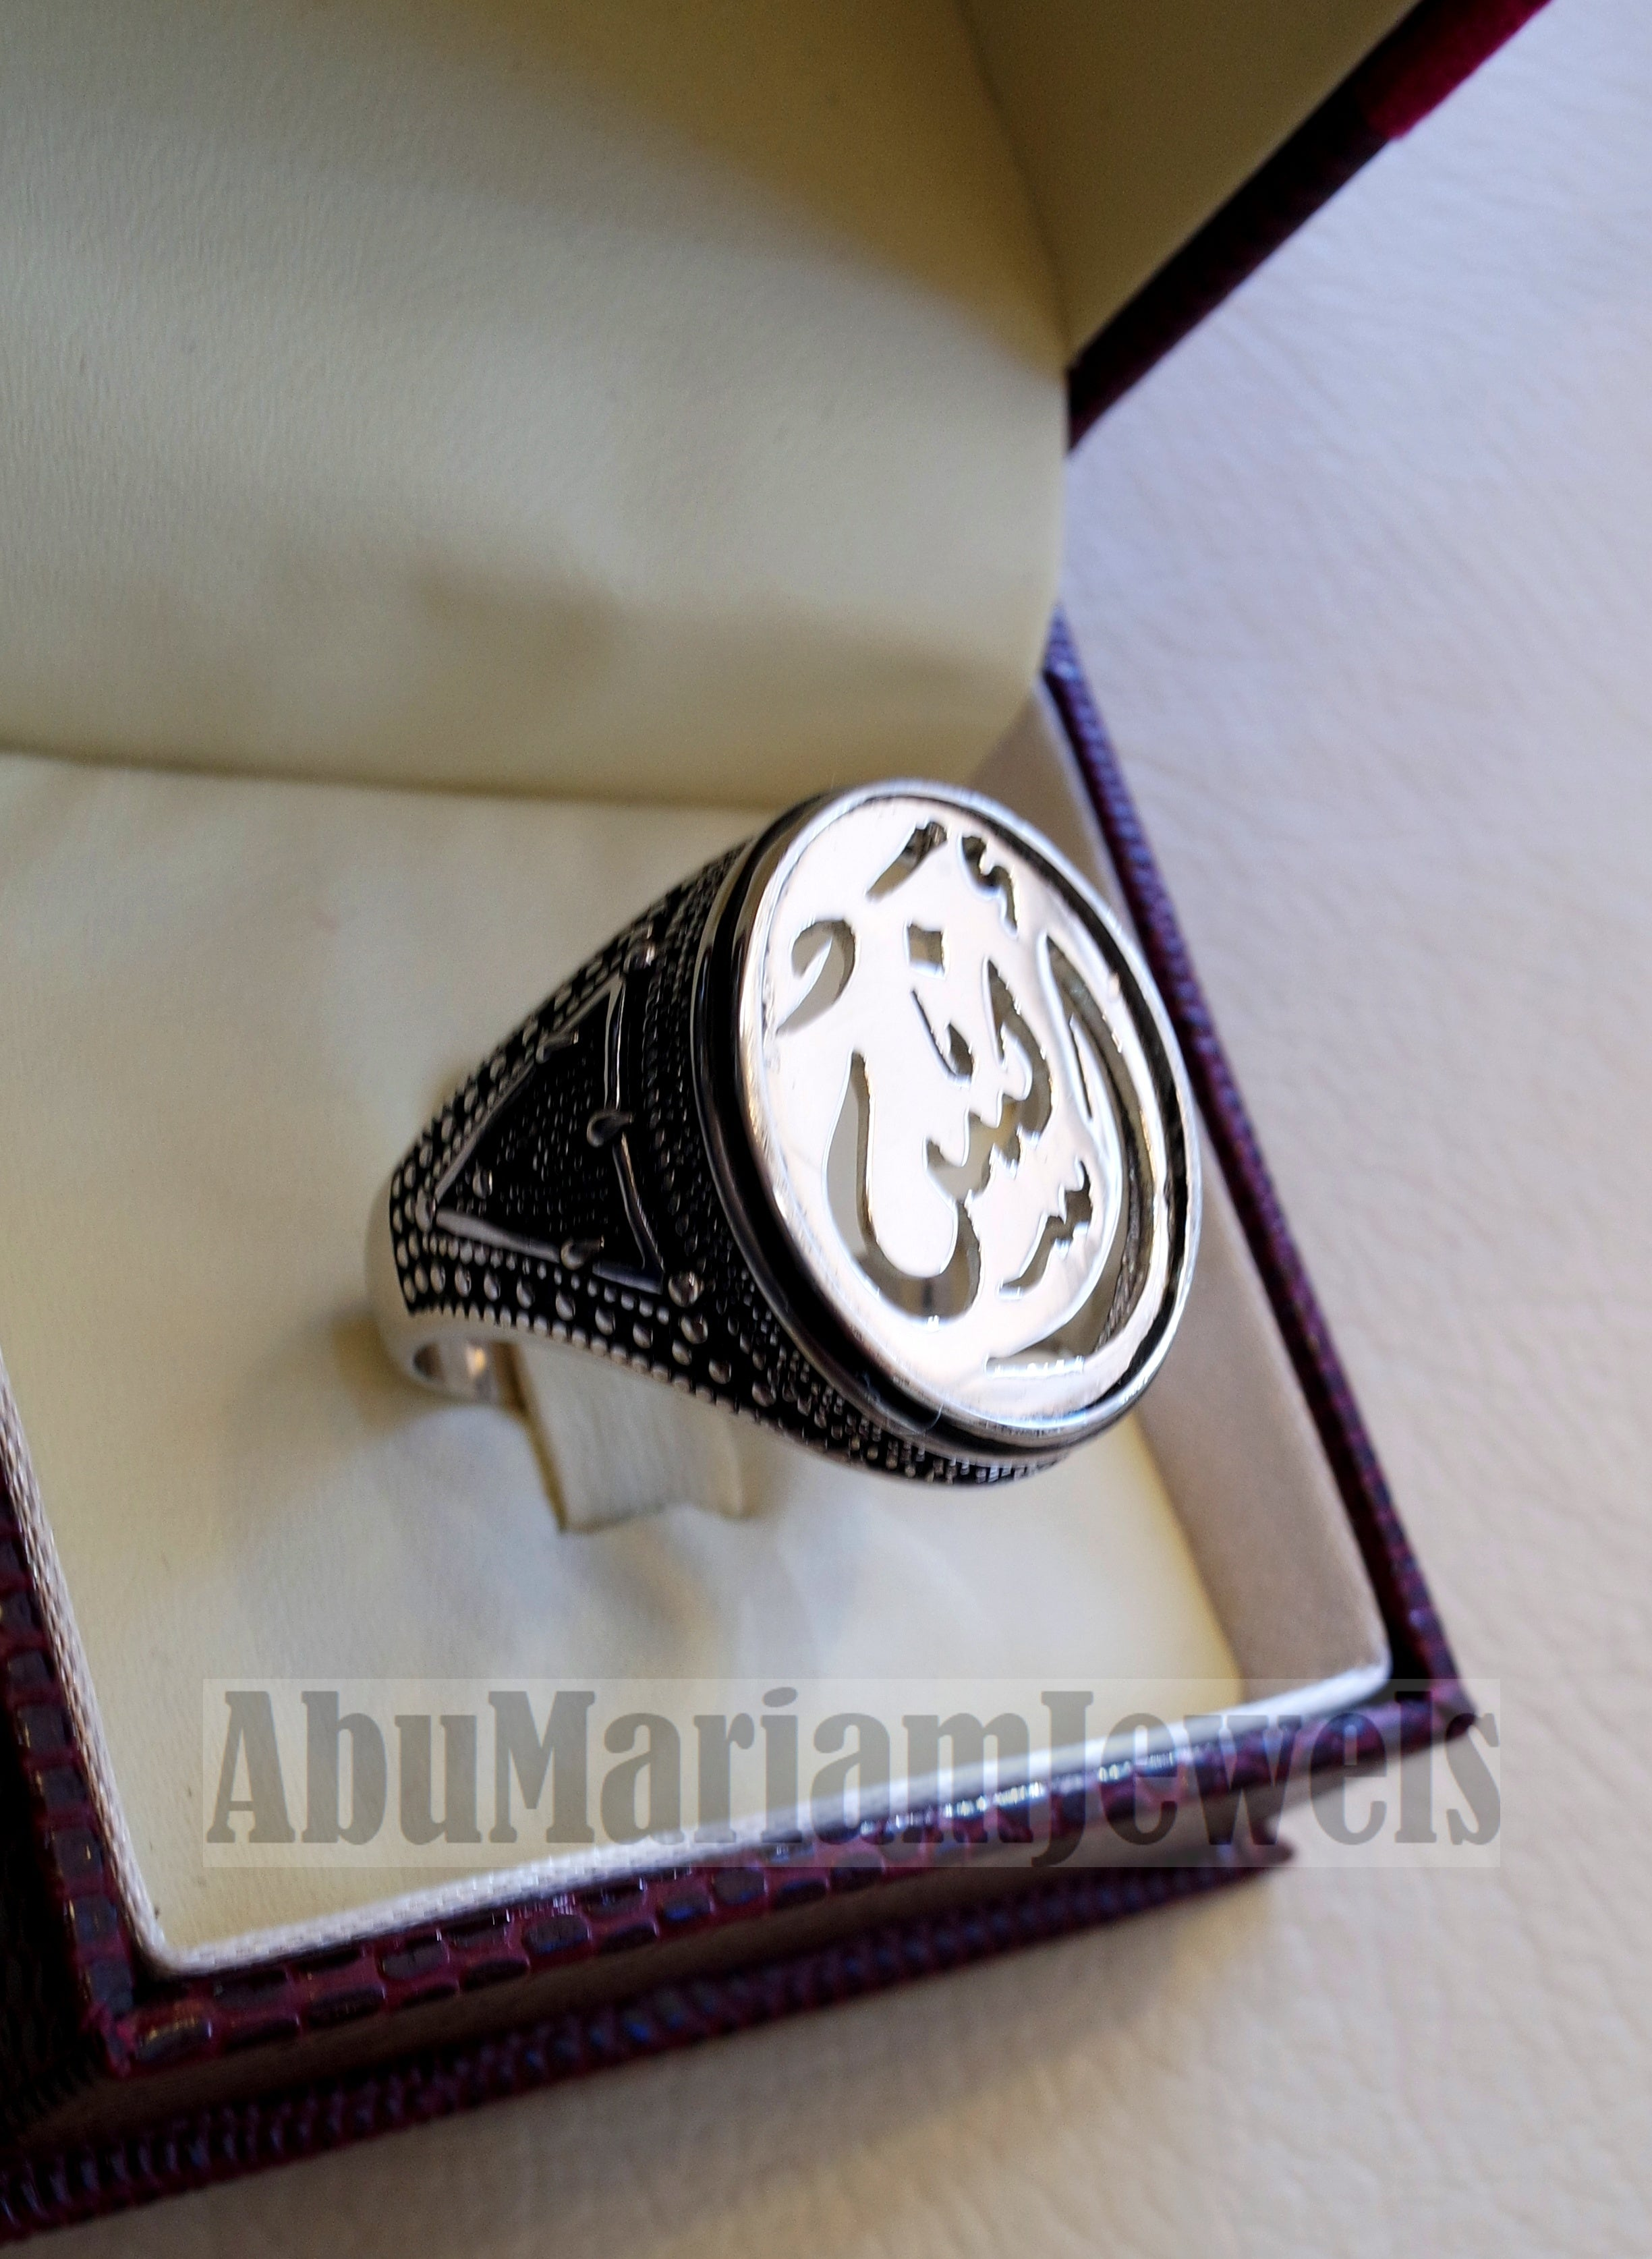 Customized Arabic calligraphy names handmade ring personalized antique jewelry style sterling silver 925 any size TSN1011 خاتم اسم تفصيل